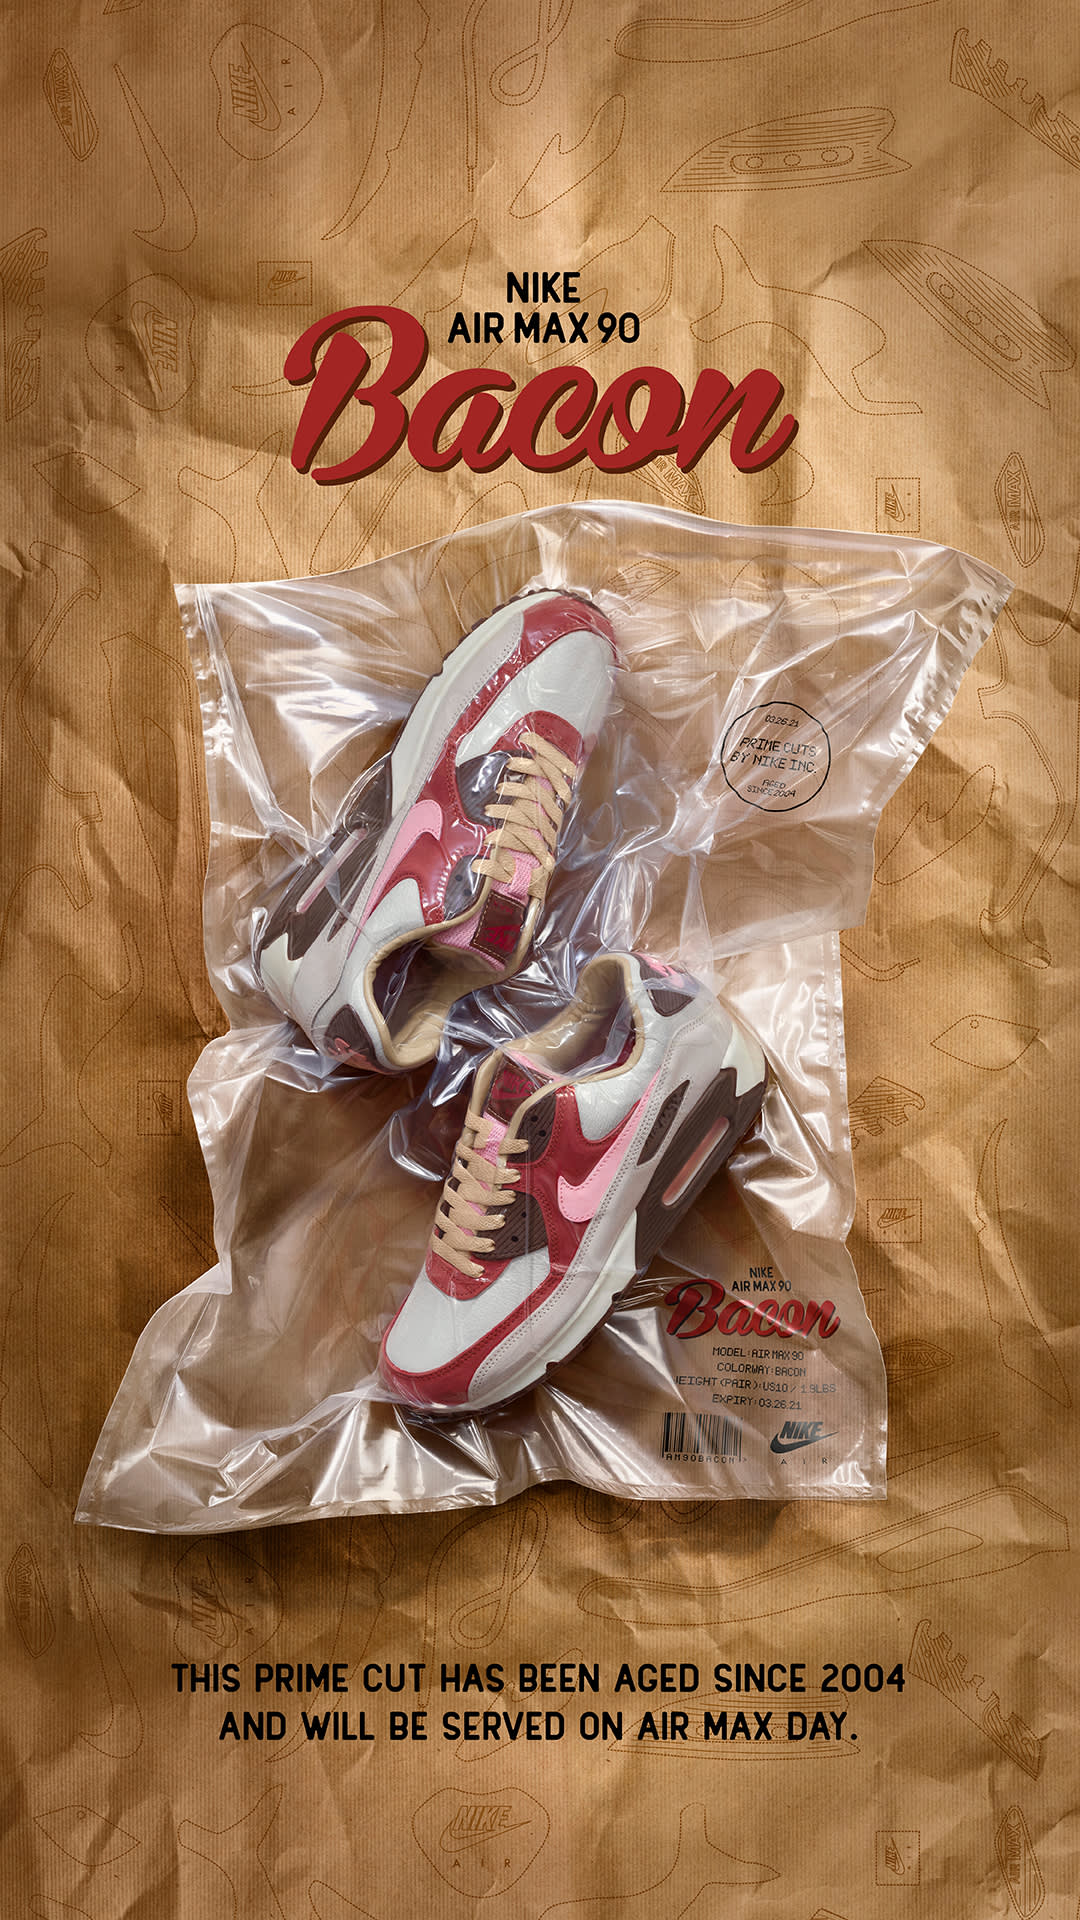 【NIKE公式】SNKRS Special: Air Max 90 'Bacon'